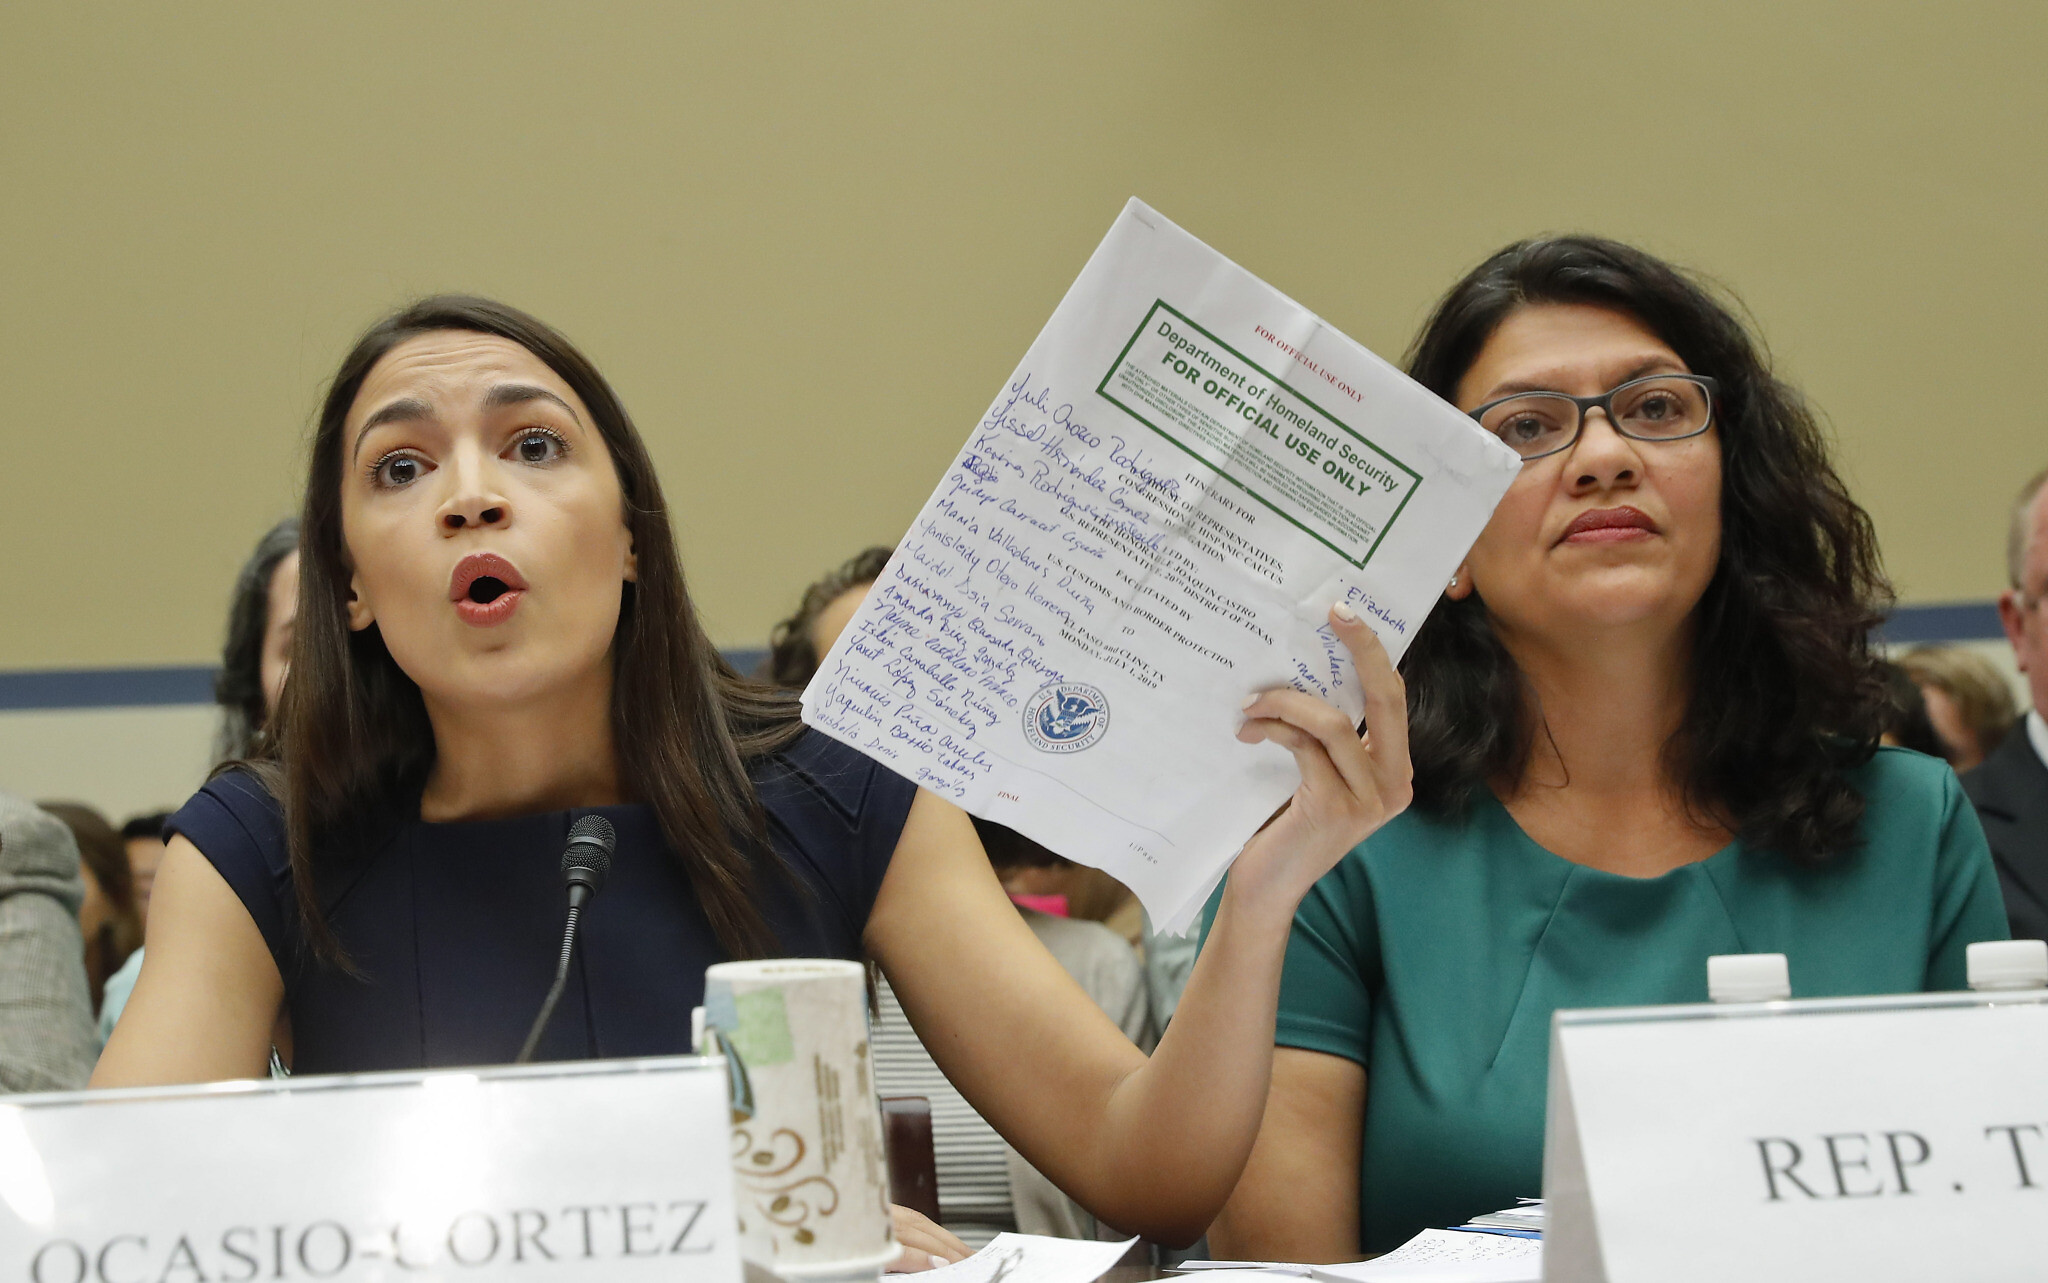 AOC, Tlaib Launch Fresh Set of Anti-Israel Plans With A House Resolution To Block Arms Sale To Israel